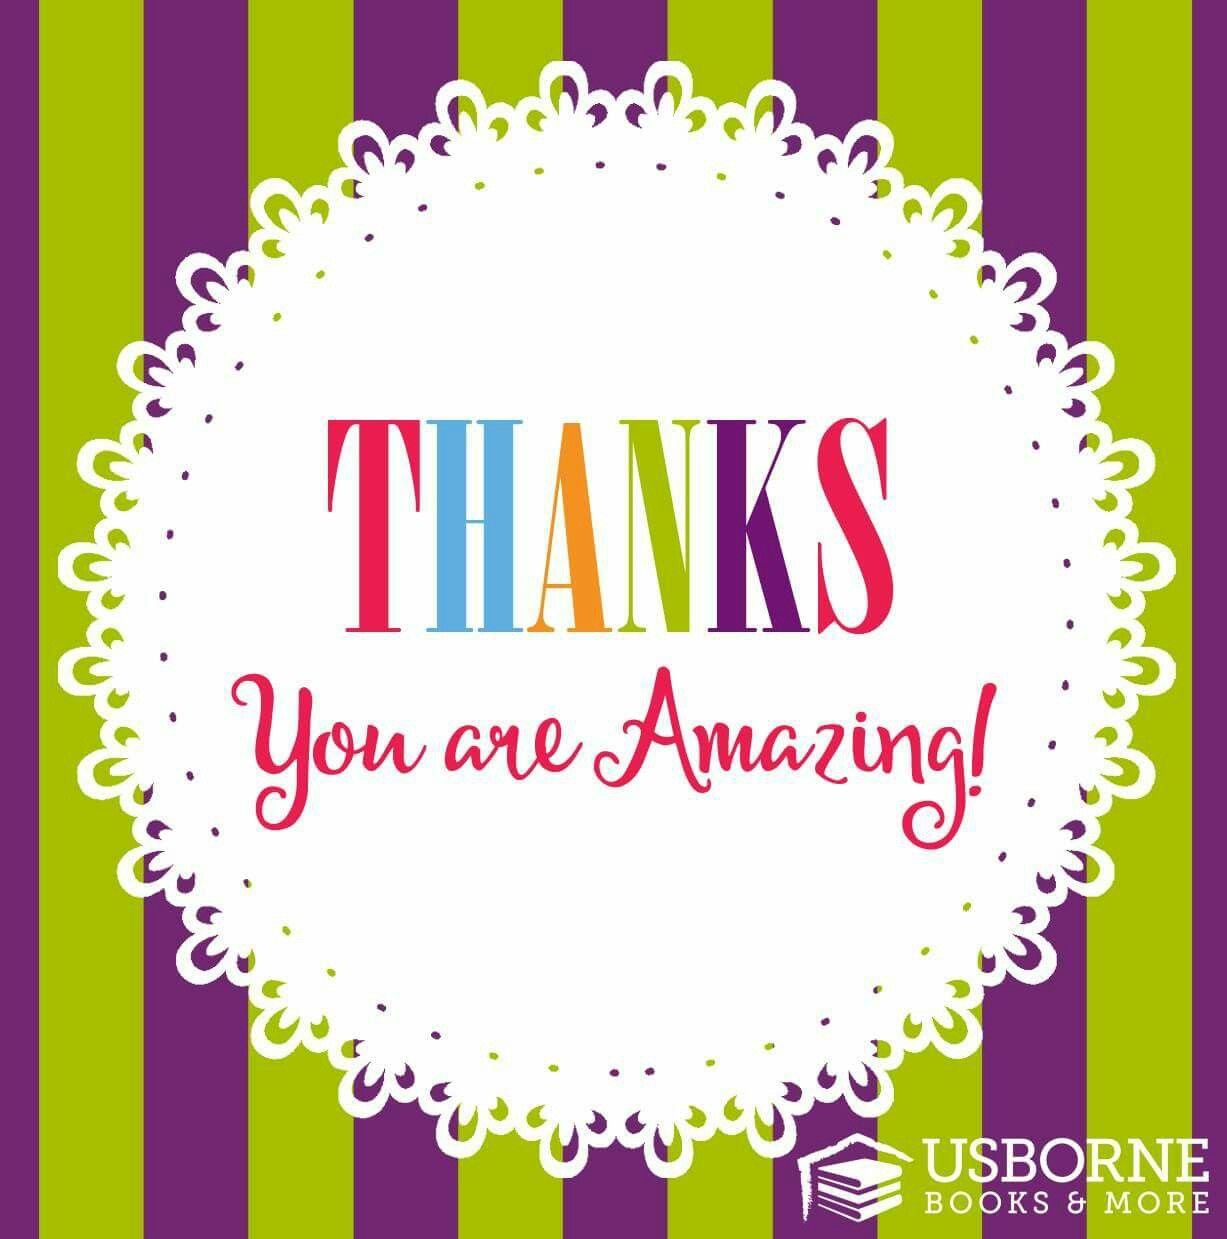 Thank You For Your Order Usborne Graphic Usborne Book Club Books